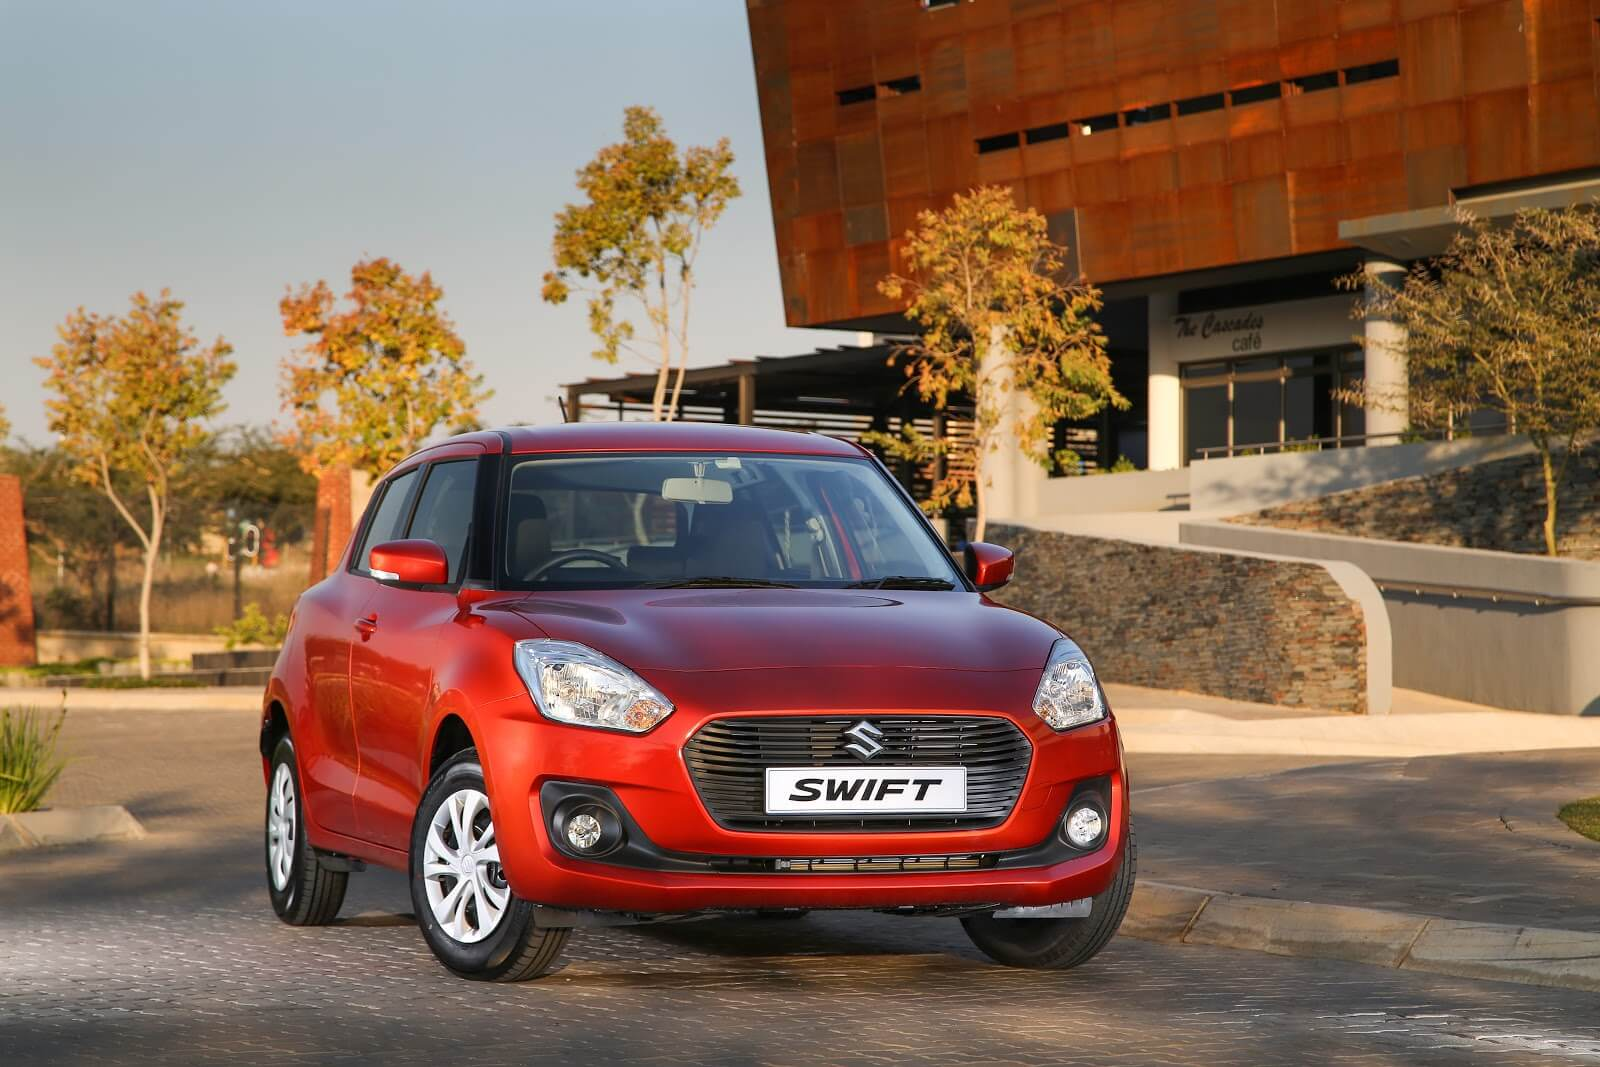 Like many things we love, the Suzuki Swift just gets better with age!